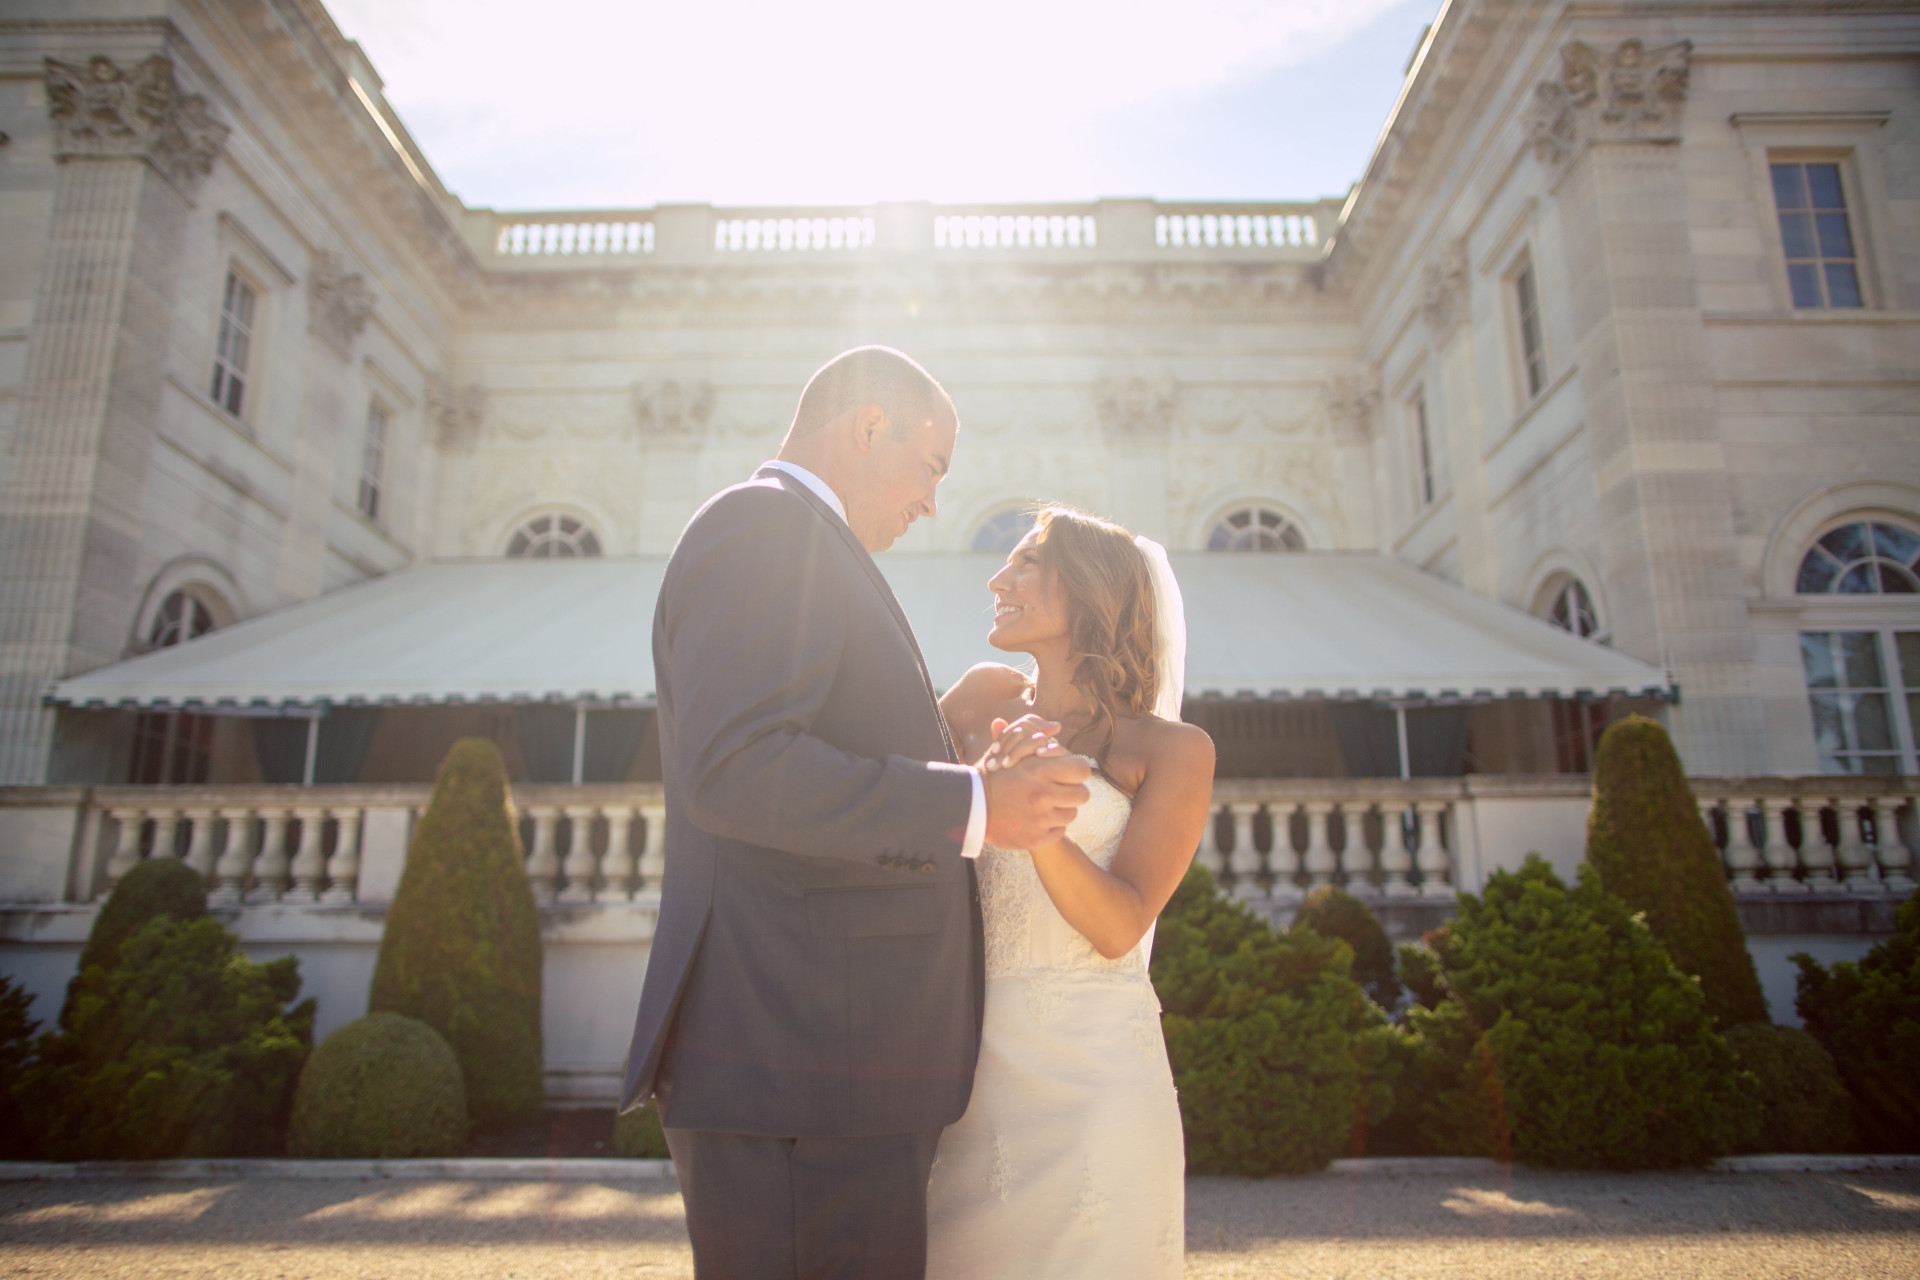 View More: http://oncelikeaspark.pass.us/lindsay-brian-wedding